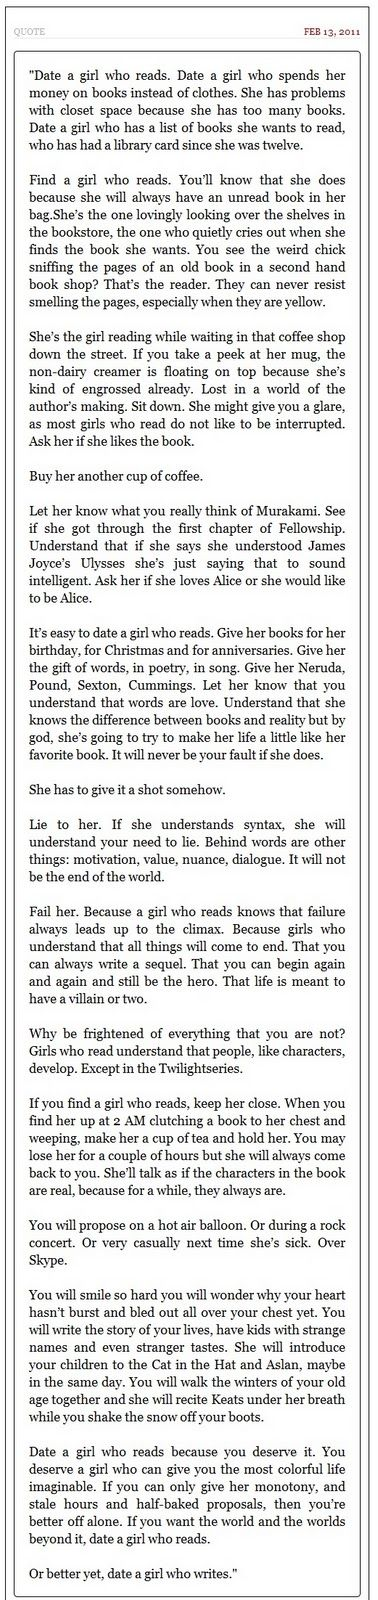 A girl who read or writes